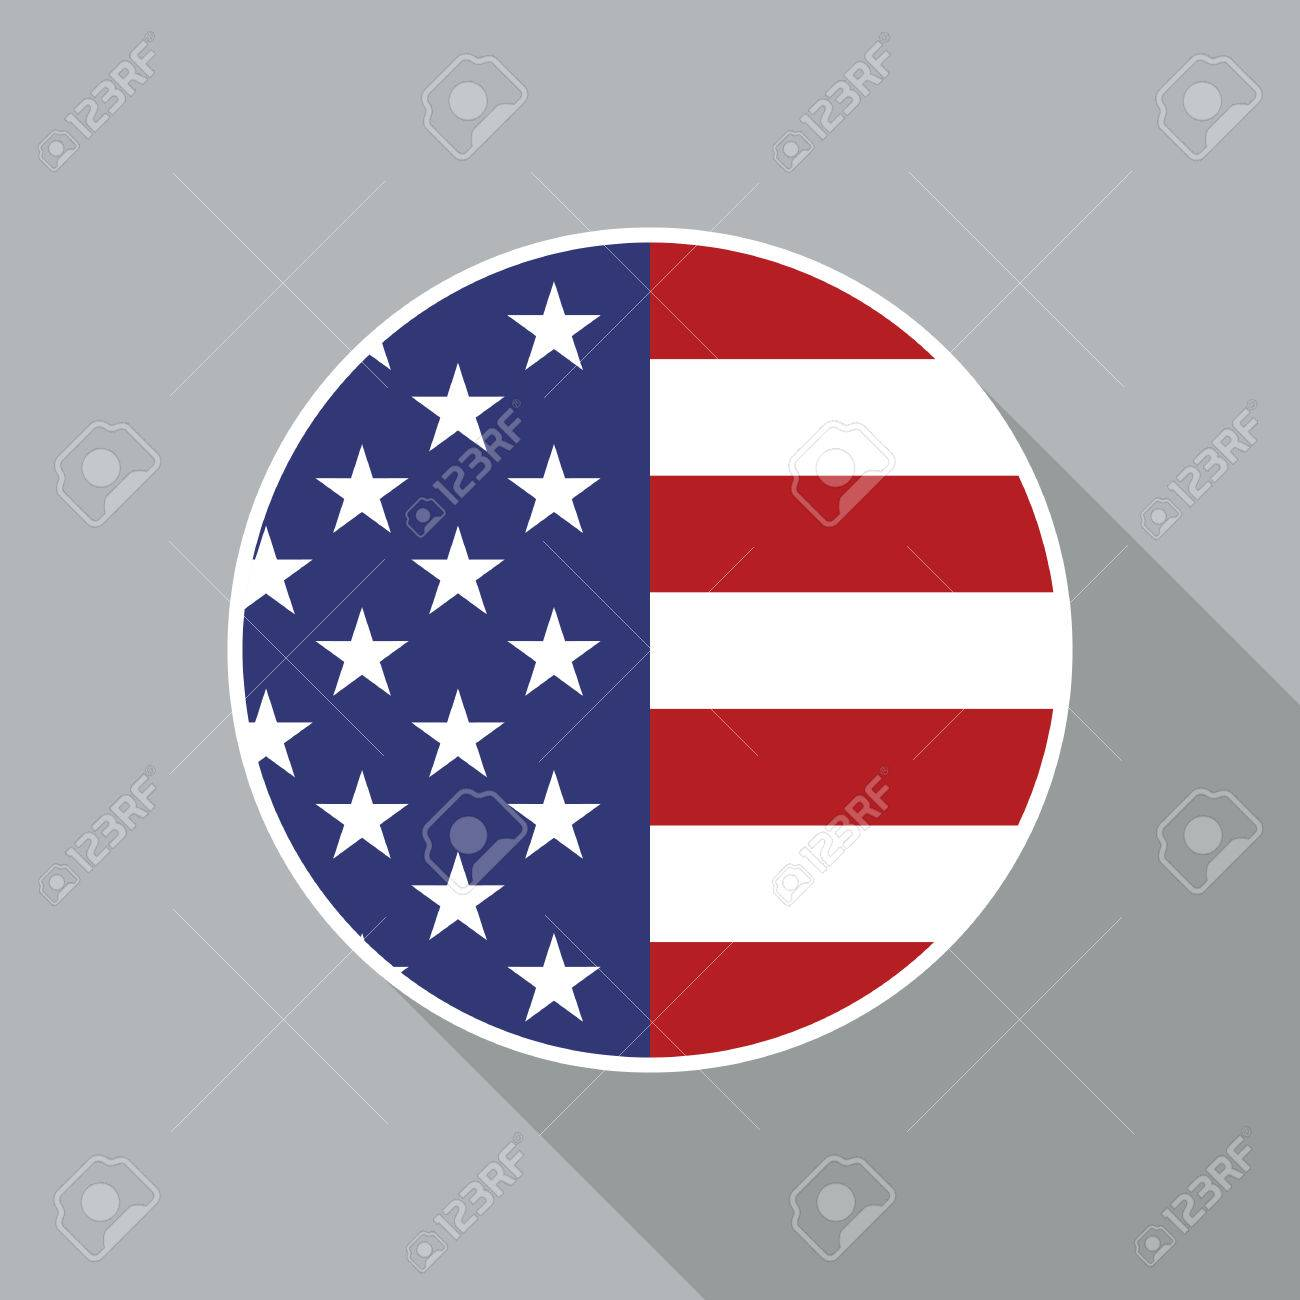 usa national flag vector flat icon vector icon of american flag rh 123rf com US Flag Vector Clip Art 5.0 Star US Flag Vector Art